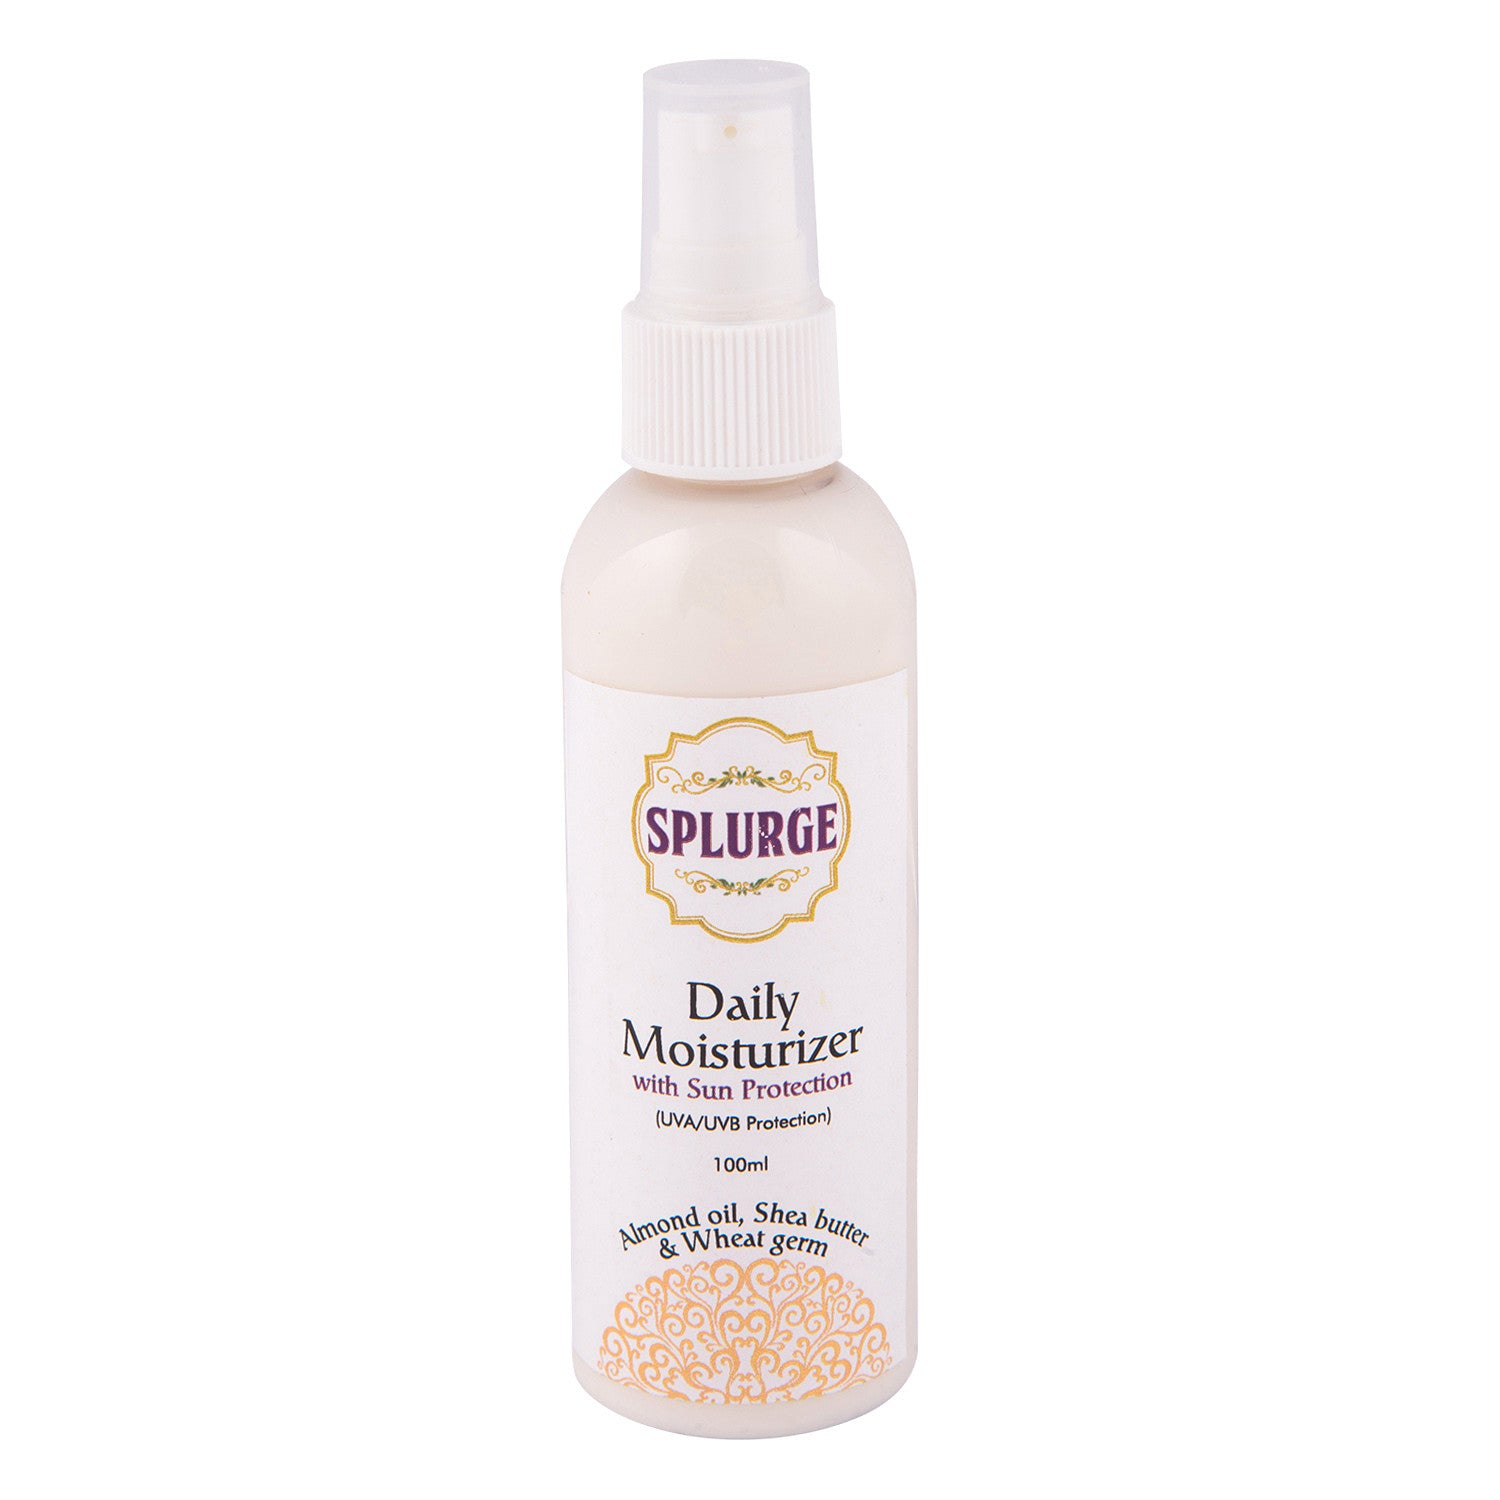 Daily Moisturizer with Sun Protection (UVA/UVB)